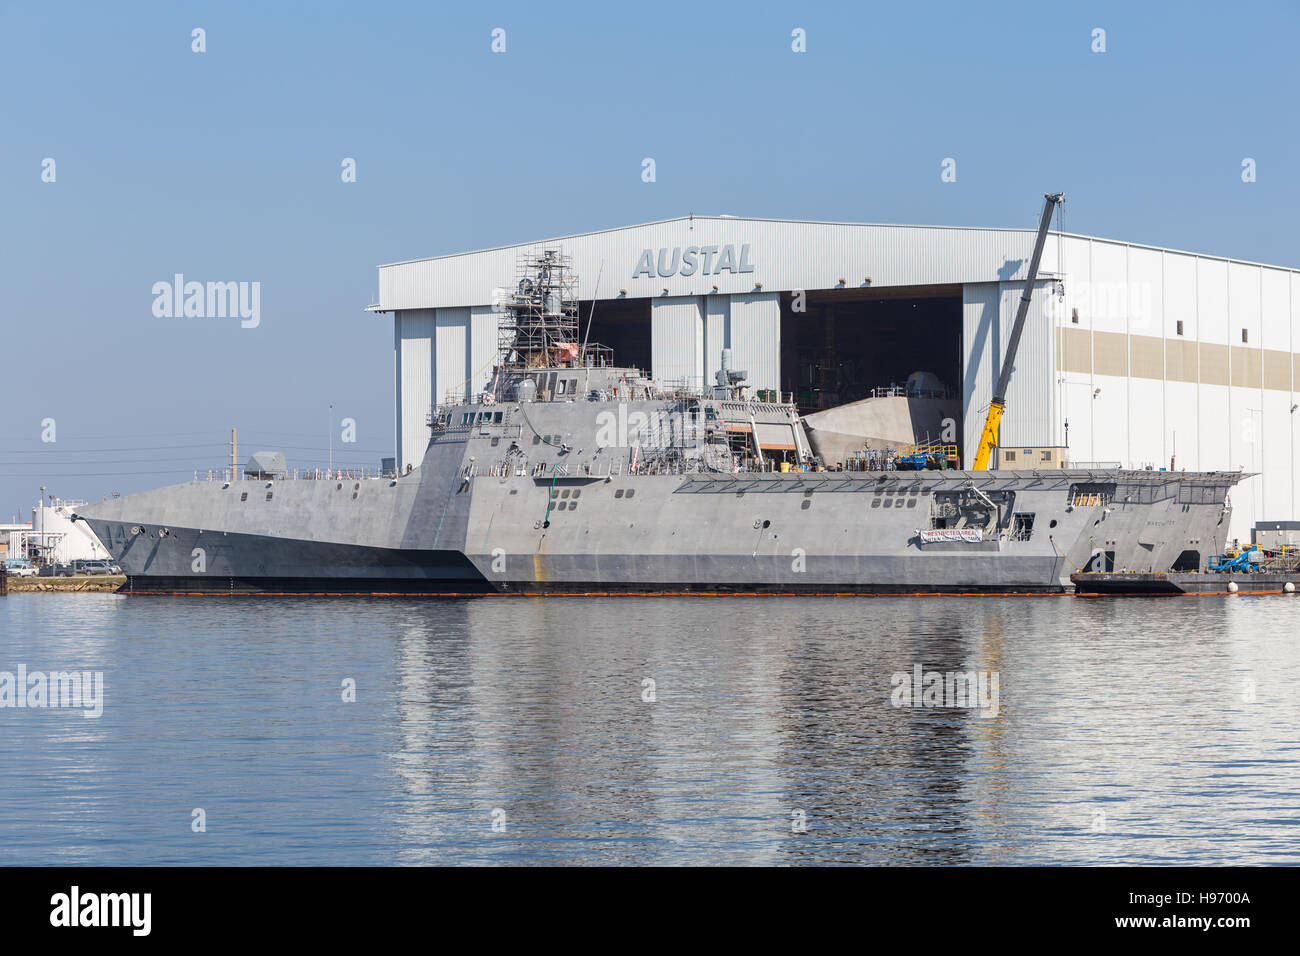 USS Manchester Ship combat littoral (LCS) en construction au chantier naval Austal sur la rivière Mobile à Photo Stock